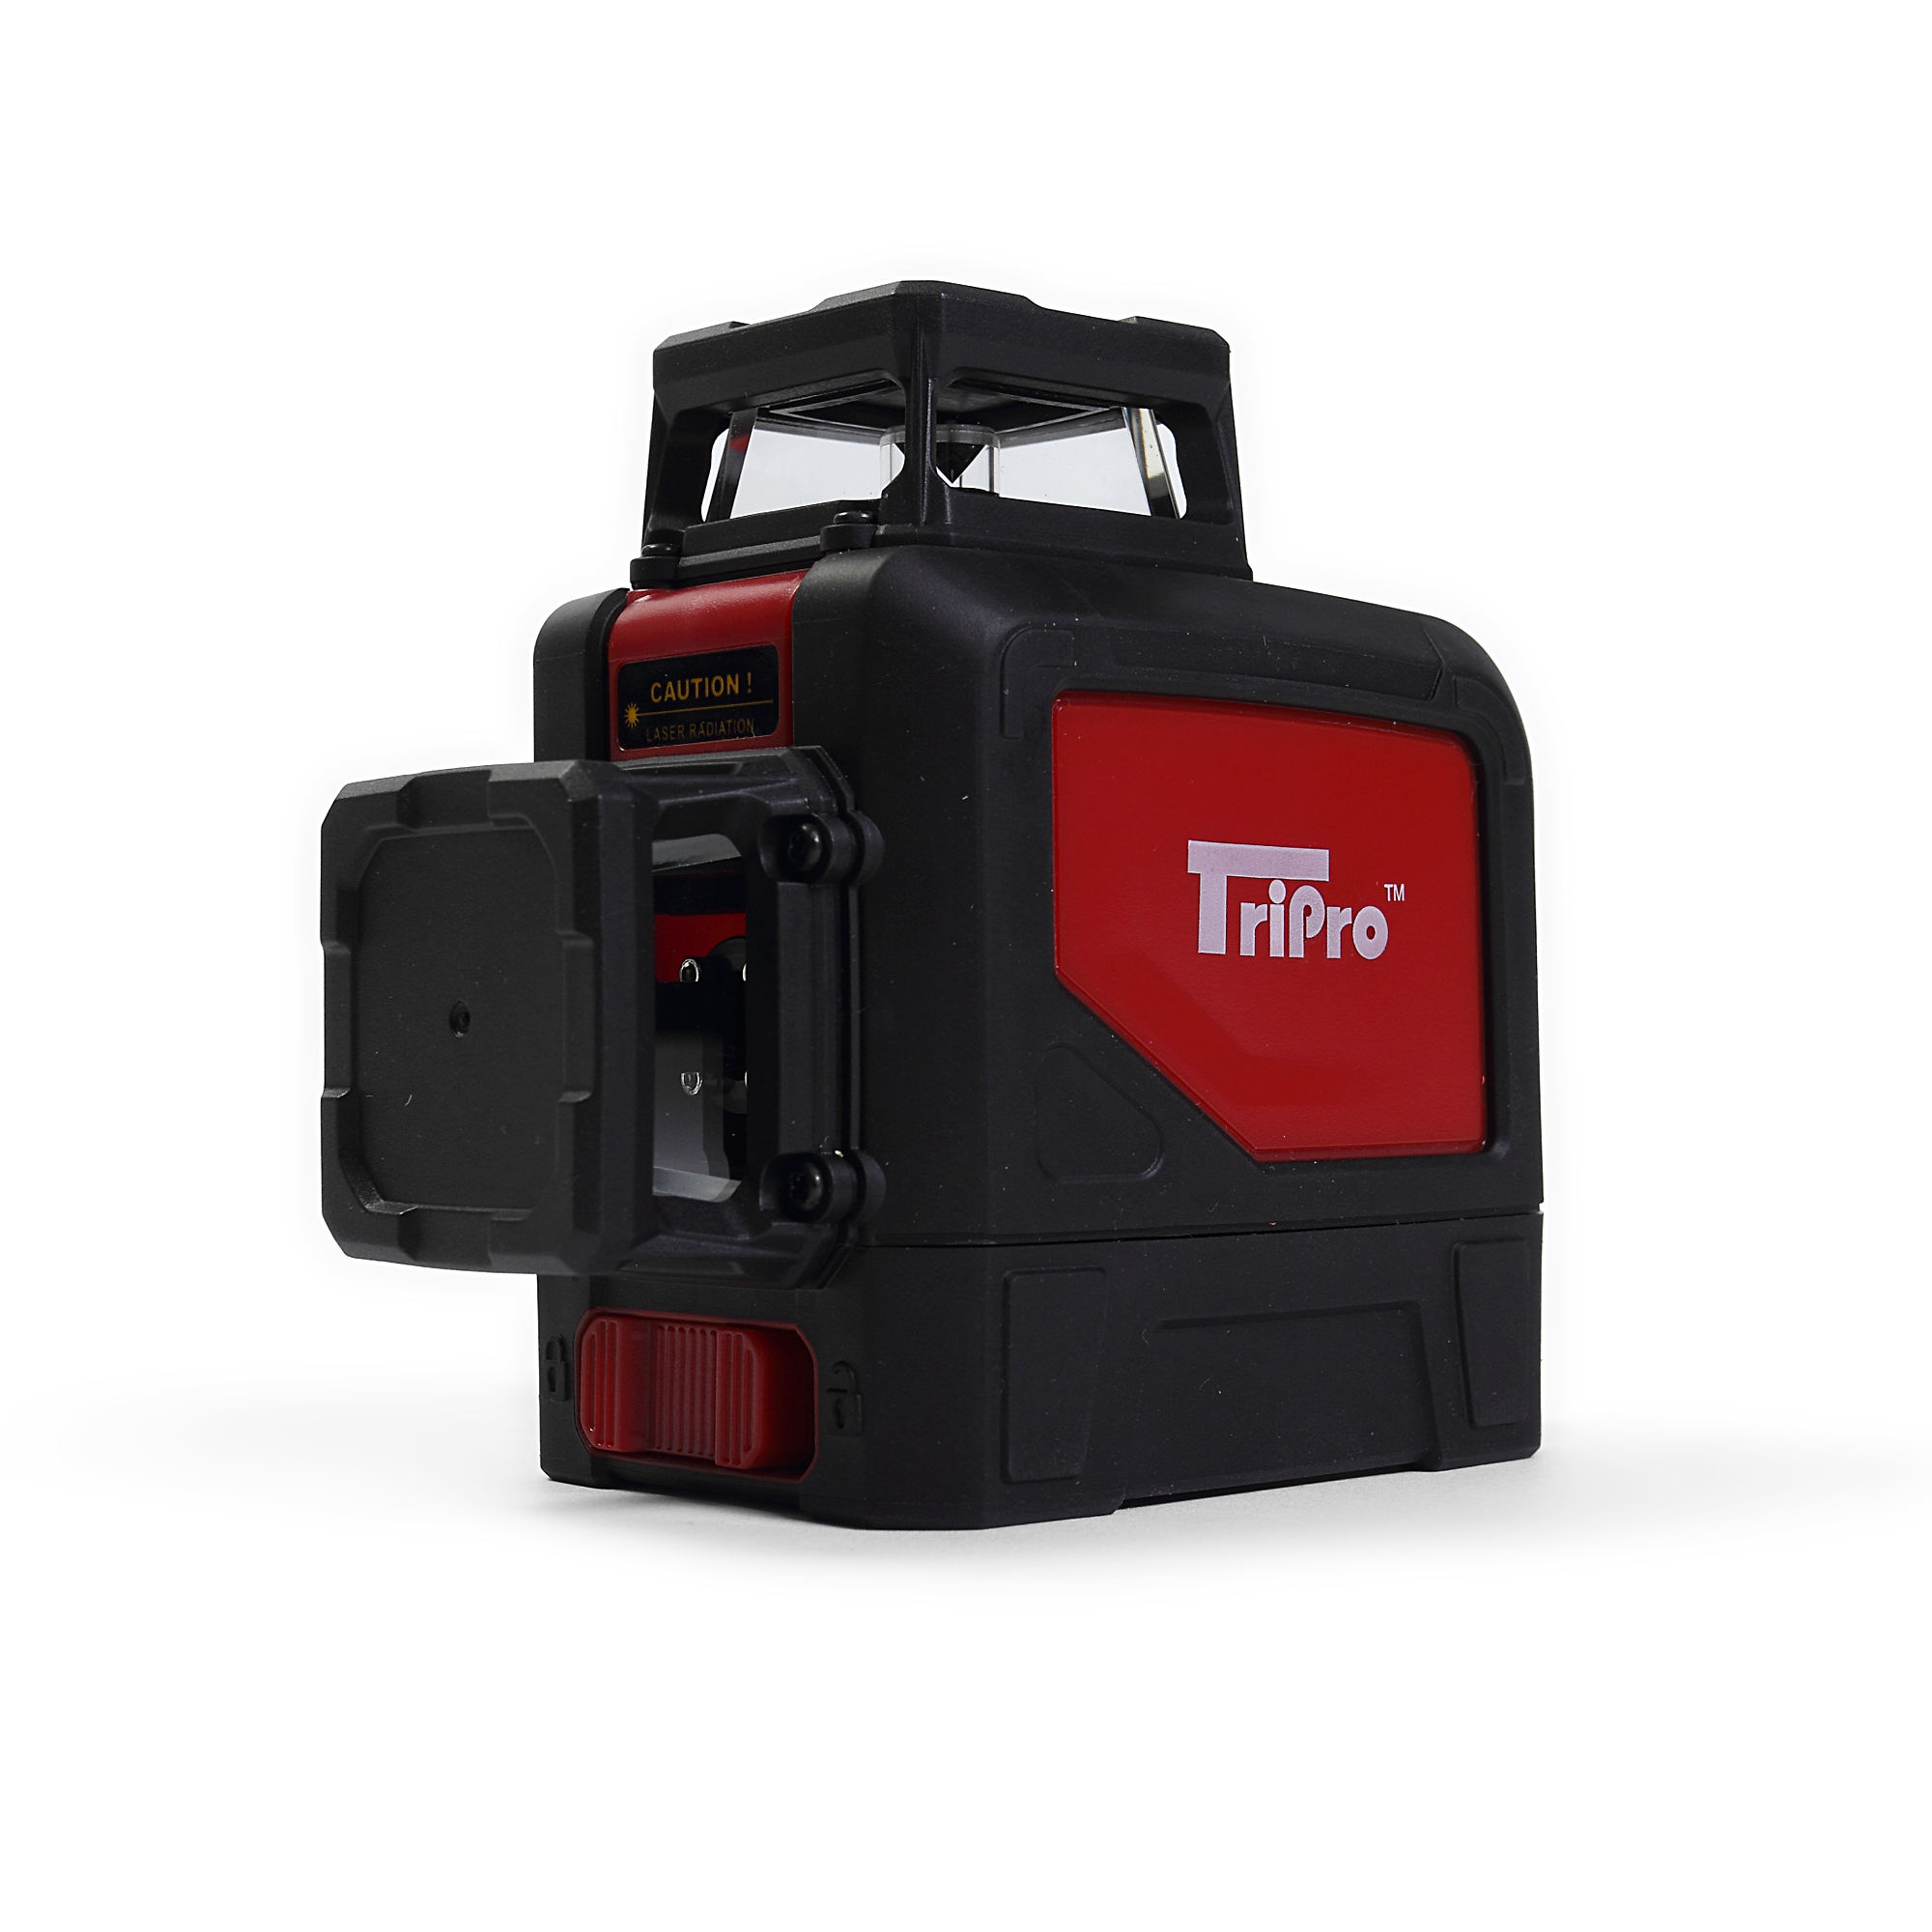 Tripro 3D 2x360 Self Leveling Rotary Cross Optional Tripod Receiver Detector Staff Laser Level